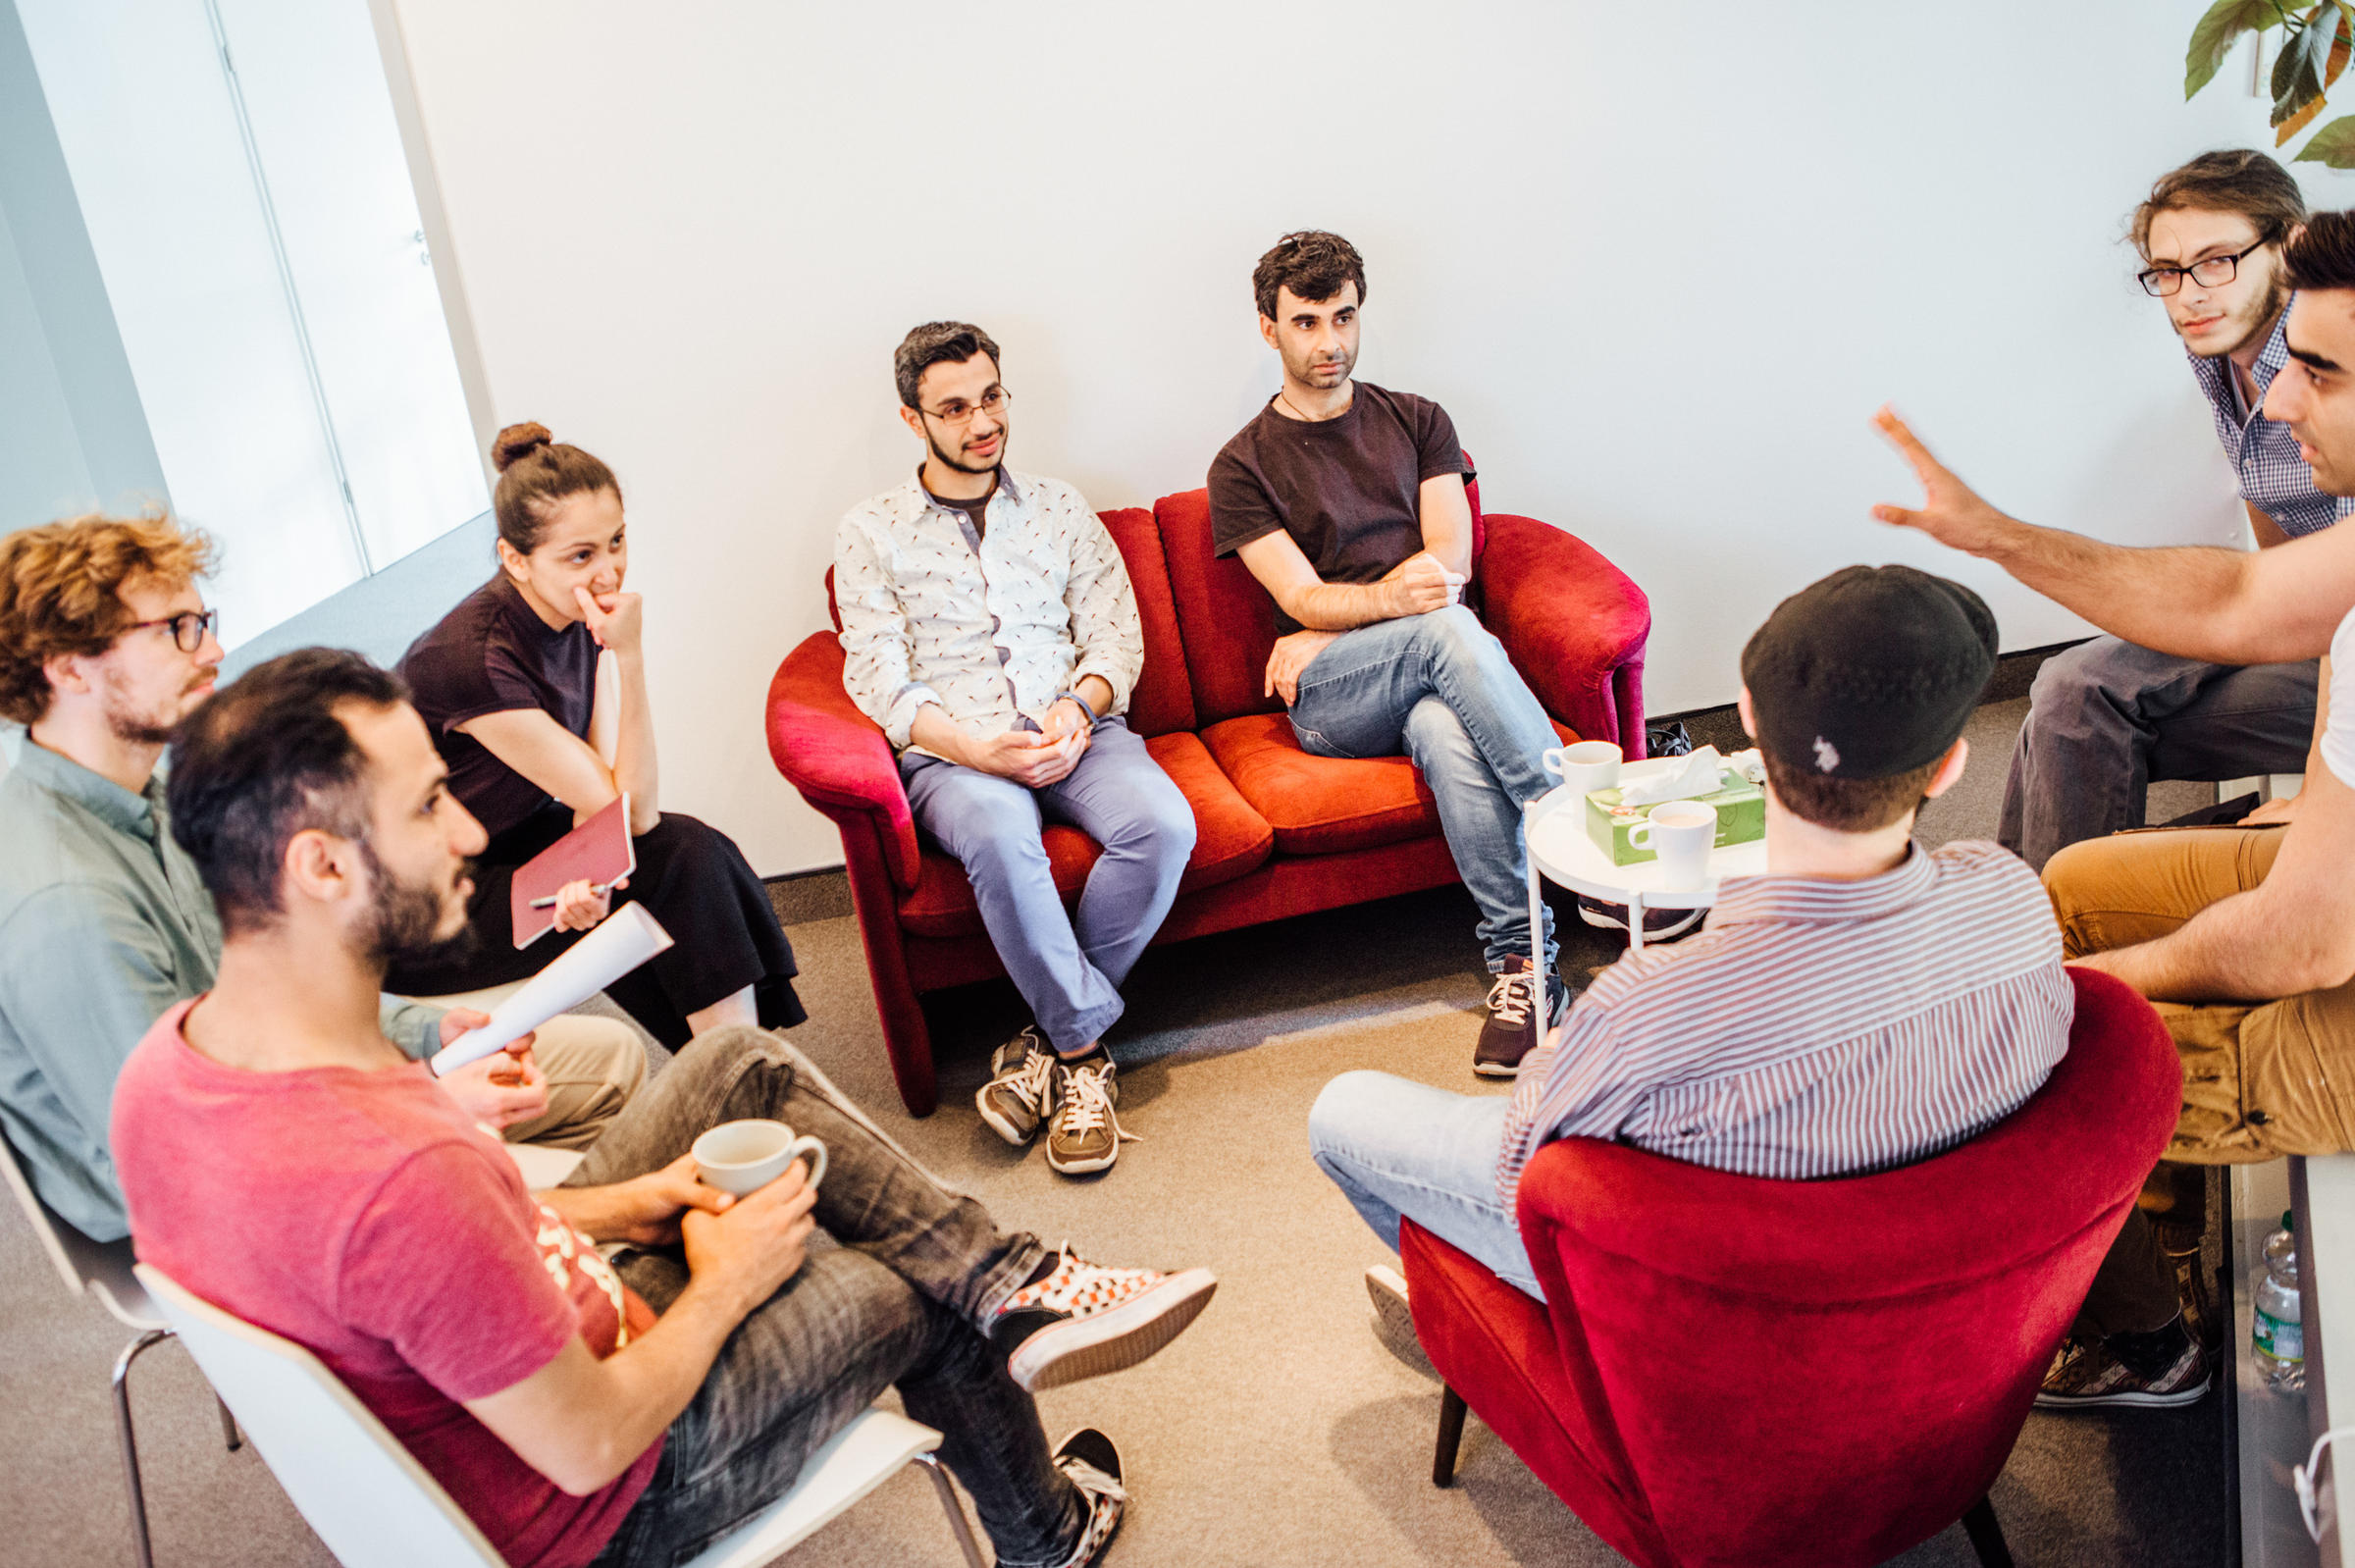 peer counseling The peer counseling program of the william way lgbt community center offers one-to-one counseling that is confidential and free of charge we offer short-term, goal-oriented counseling.